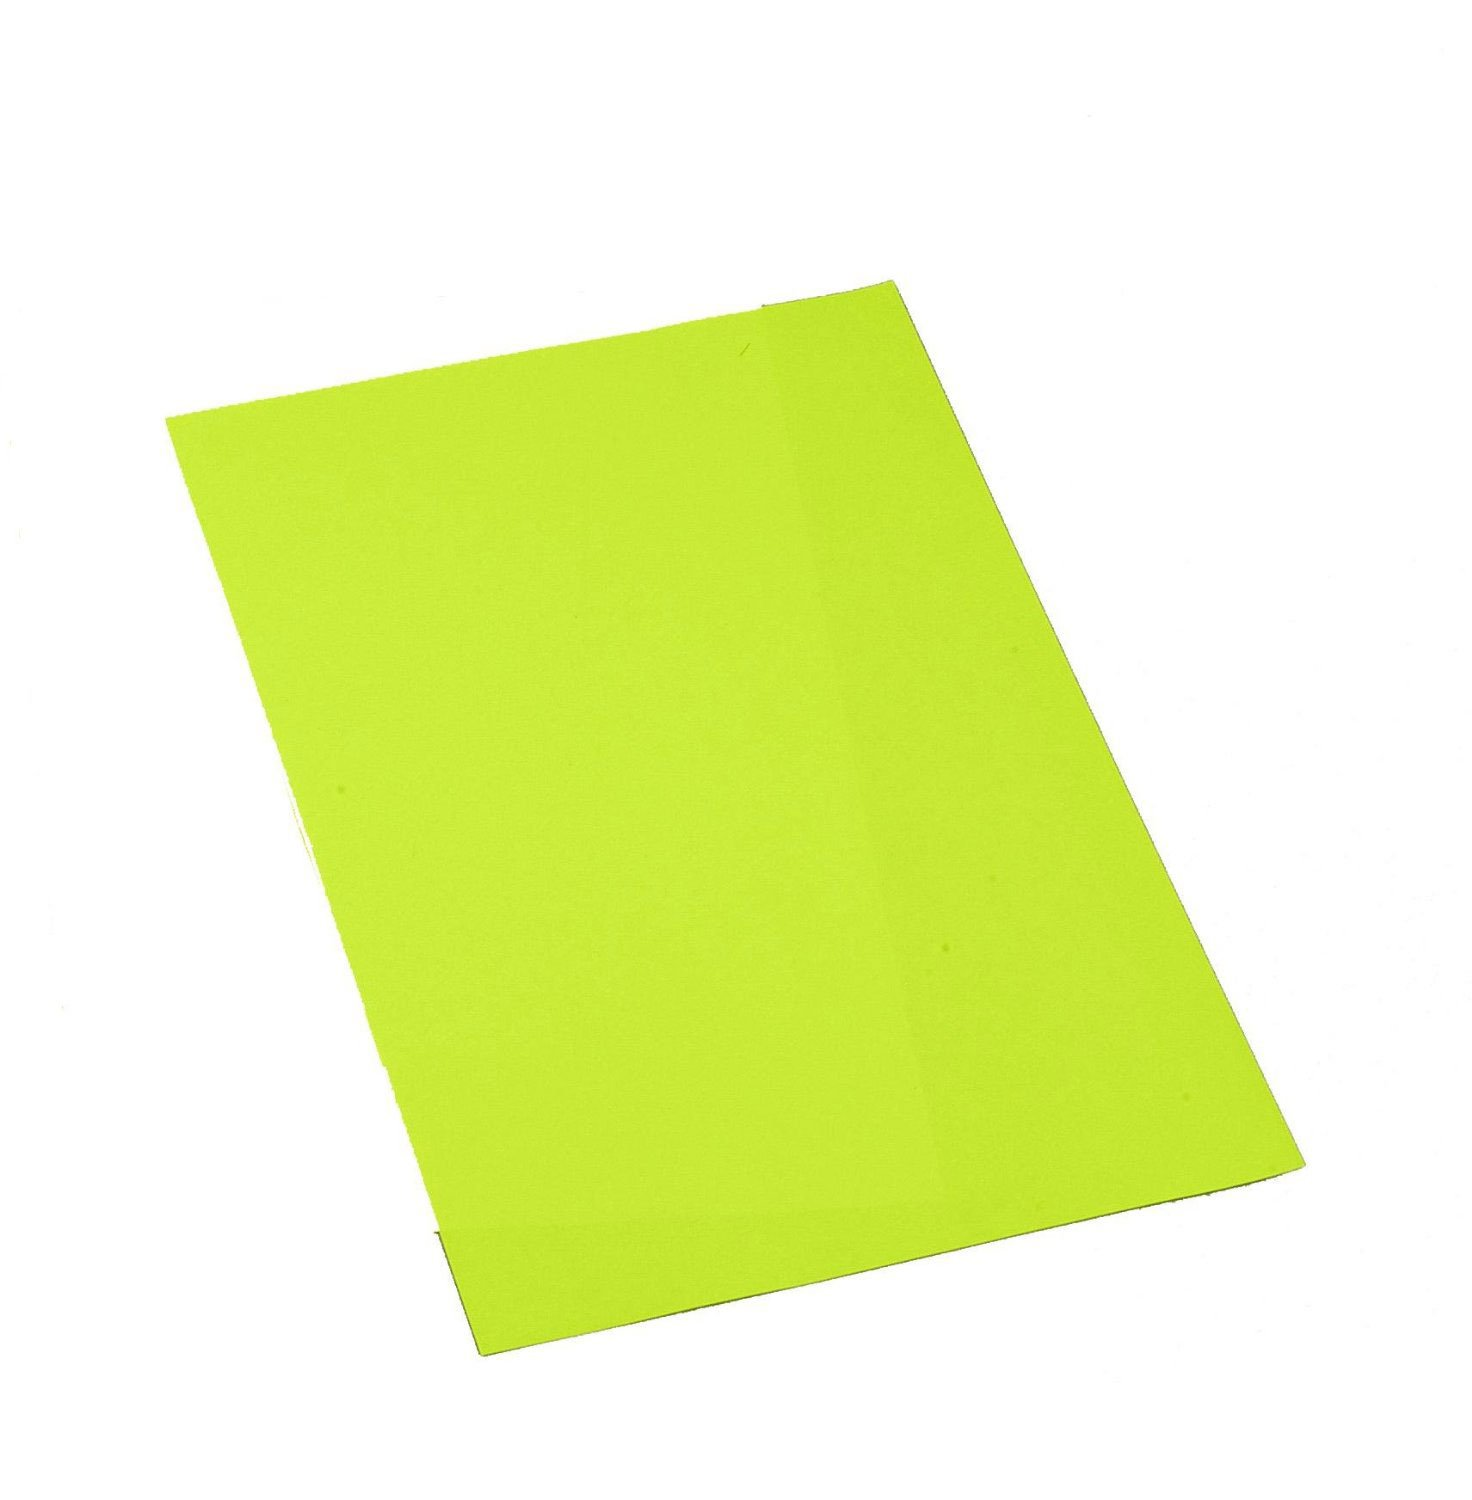 Day-Glo Copier Paper 841mm x 100m Green (Roll)